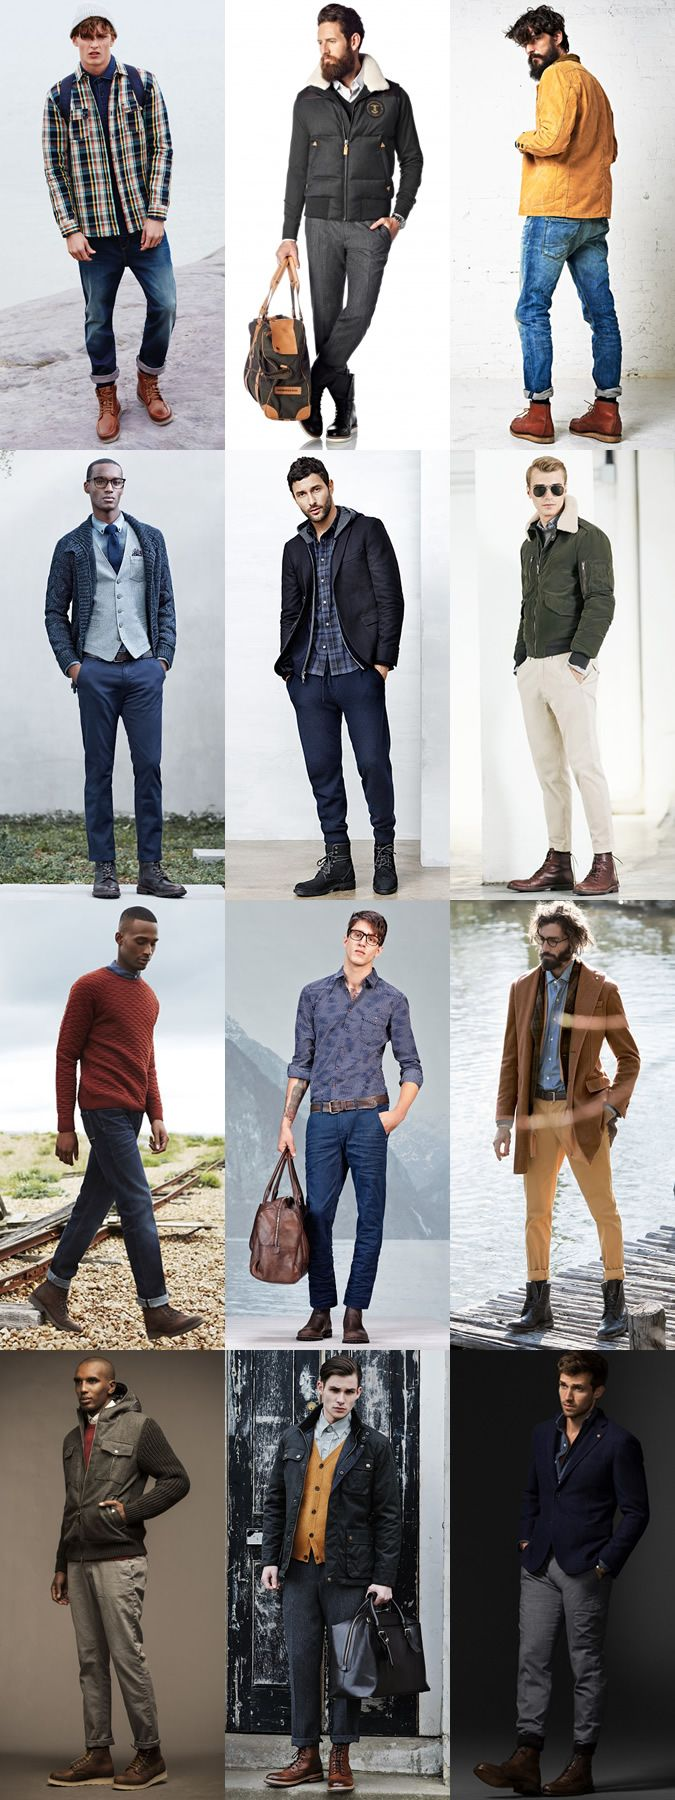 Men's Rugged Boots - Transitional Season Outfit Inspiration Lookbook